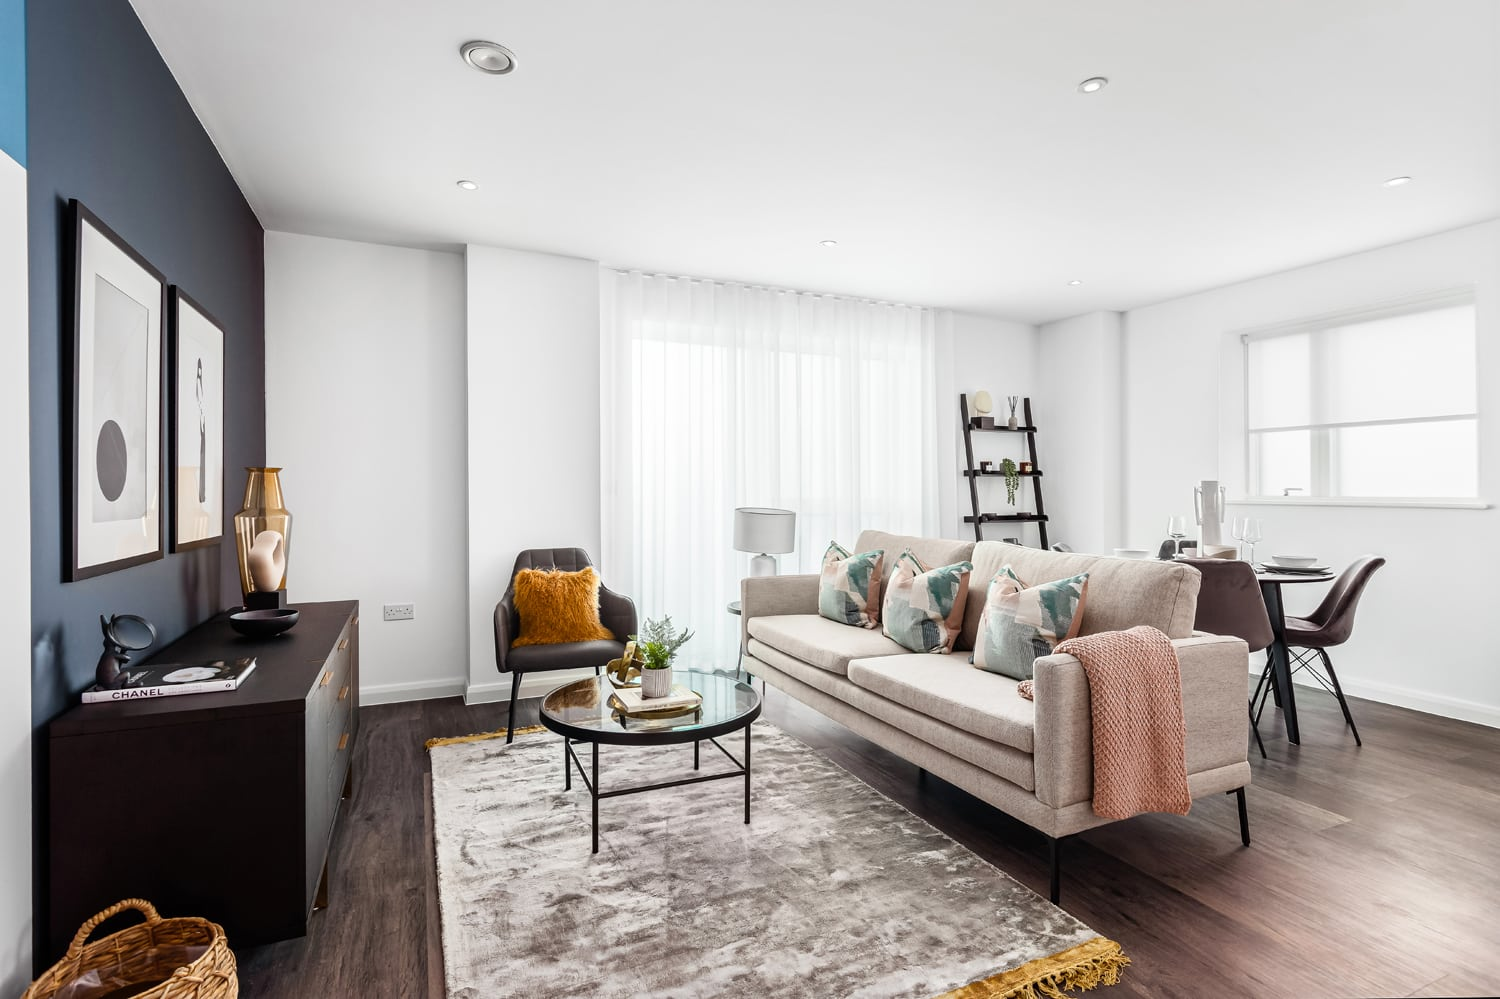 Internal photography of BE WESTS's Waterside Heights - Shared Ownership homes available on Share to Buy